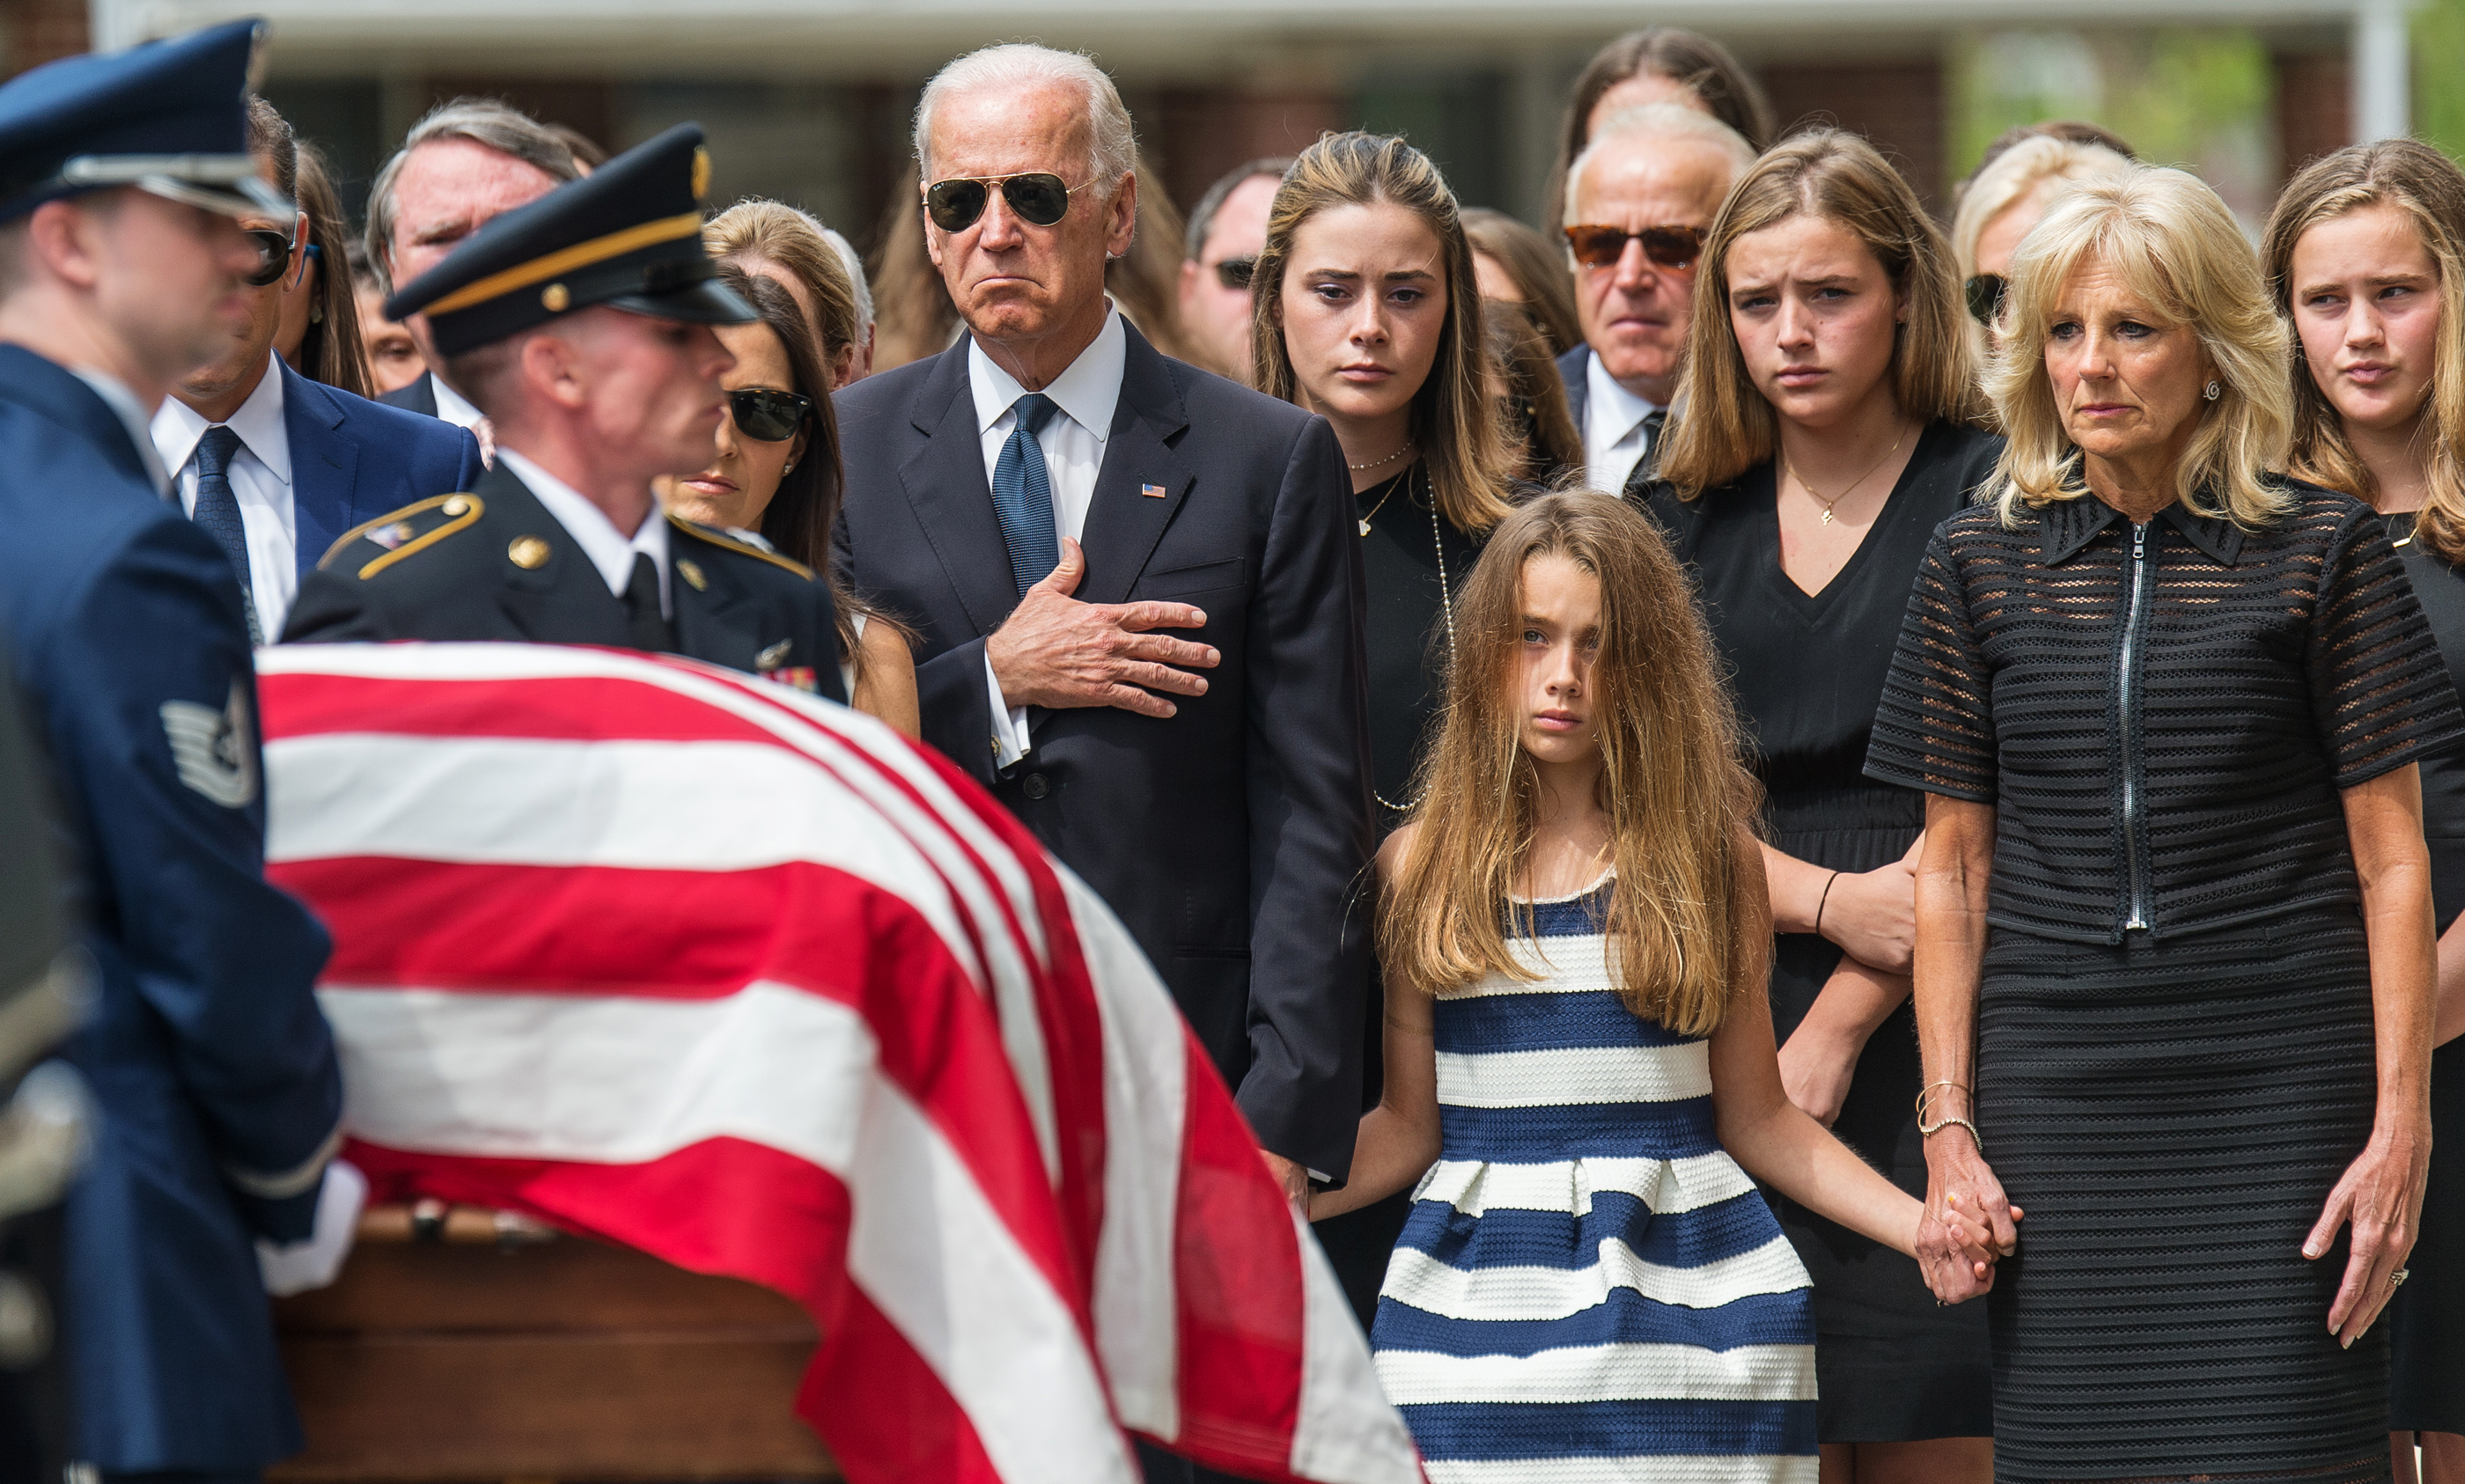 Vice President Joe Biden (R), puts his hand on his heart as he and granddaughter Natalie and stepmother Jill Biden look on before a funeral mass for former Delaware Attorney General Beau Biden, son of Vice President Biden, at St. Anthony of Padua Church in Wilmington, Delaware June 6, 2015. Photo by Bryan Woolston/Reuters